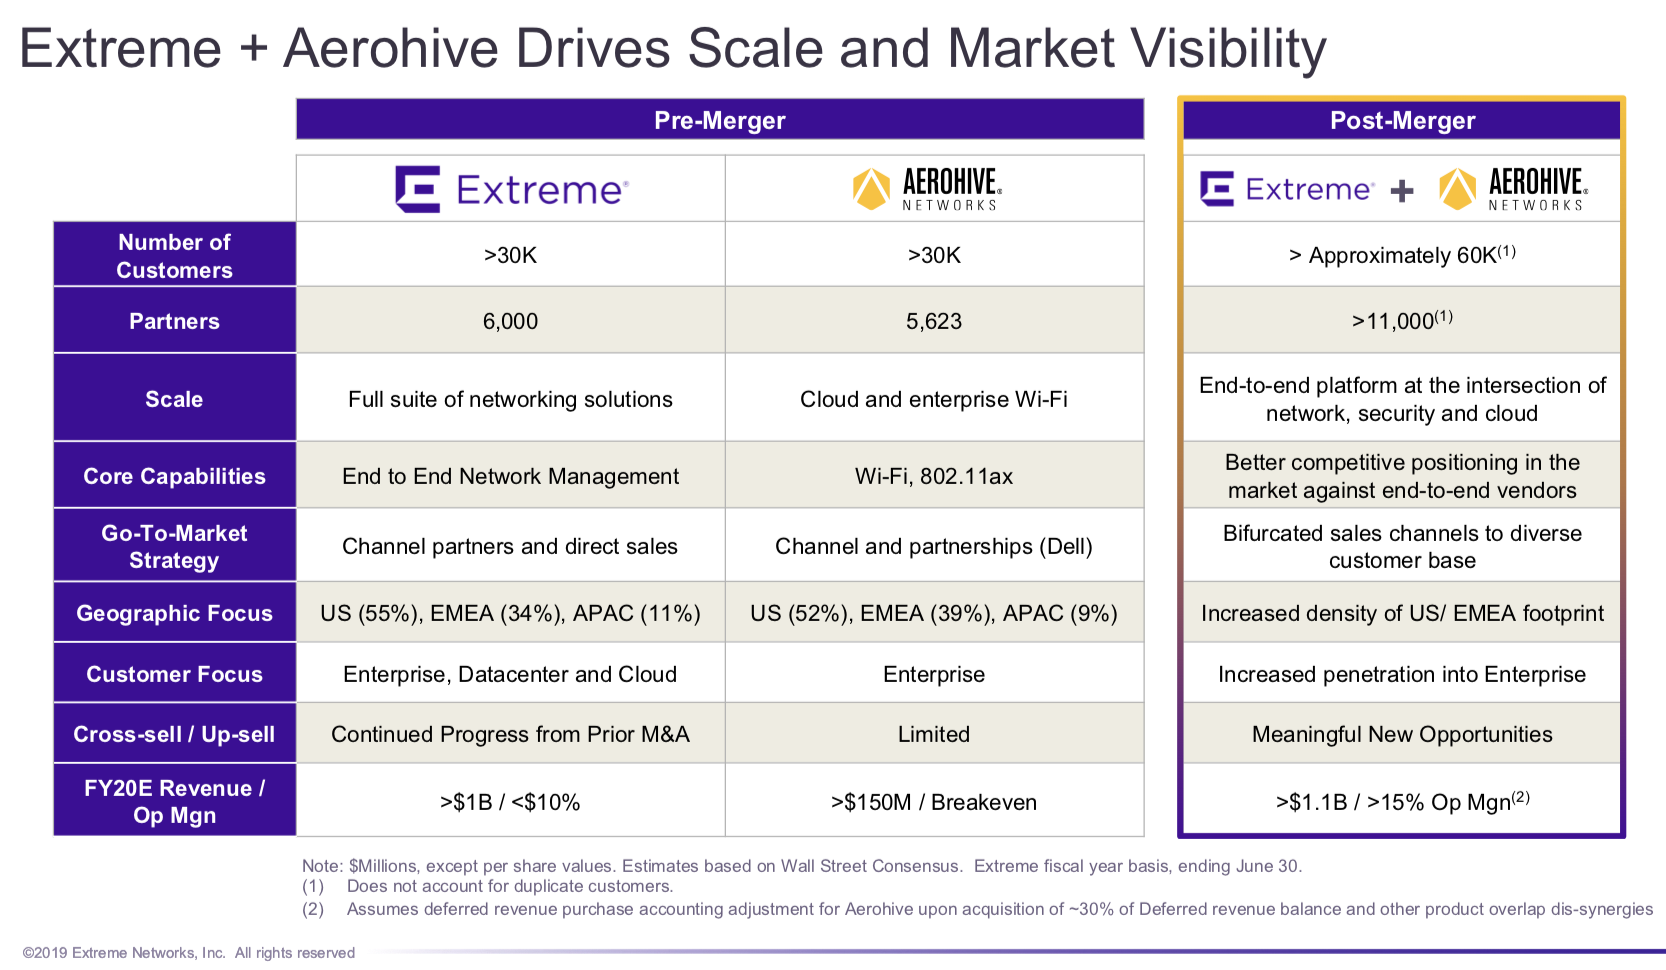 Analysis: Extreme Buys Aerohive  Not bad  - EtherealMind